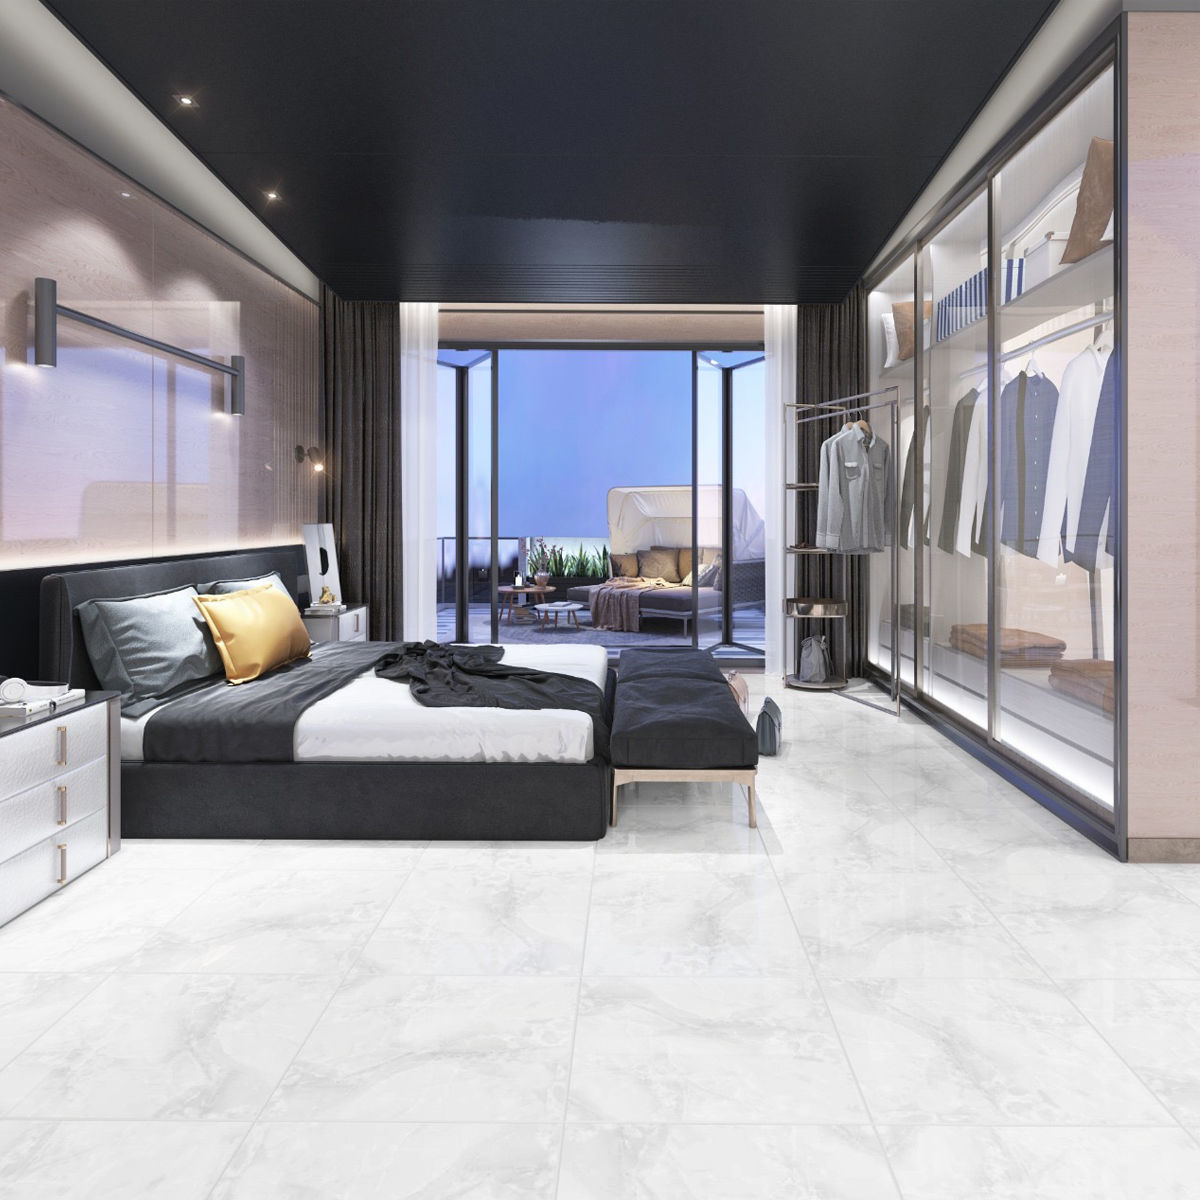 How to create a designer look with Porcelain Tiles?